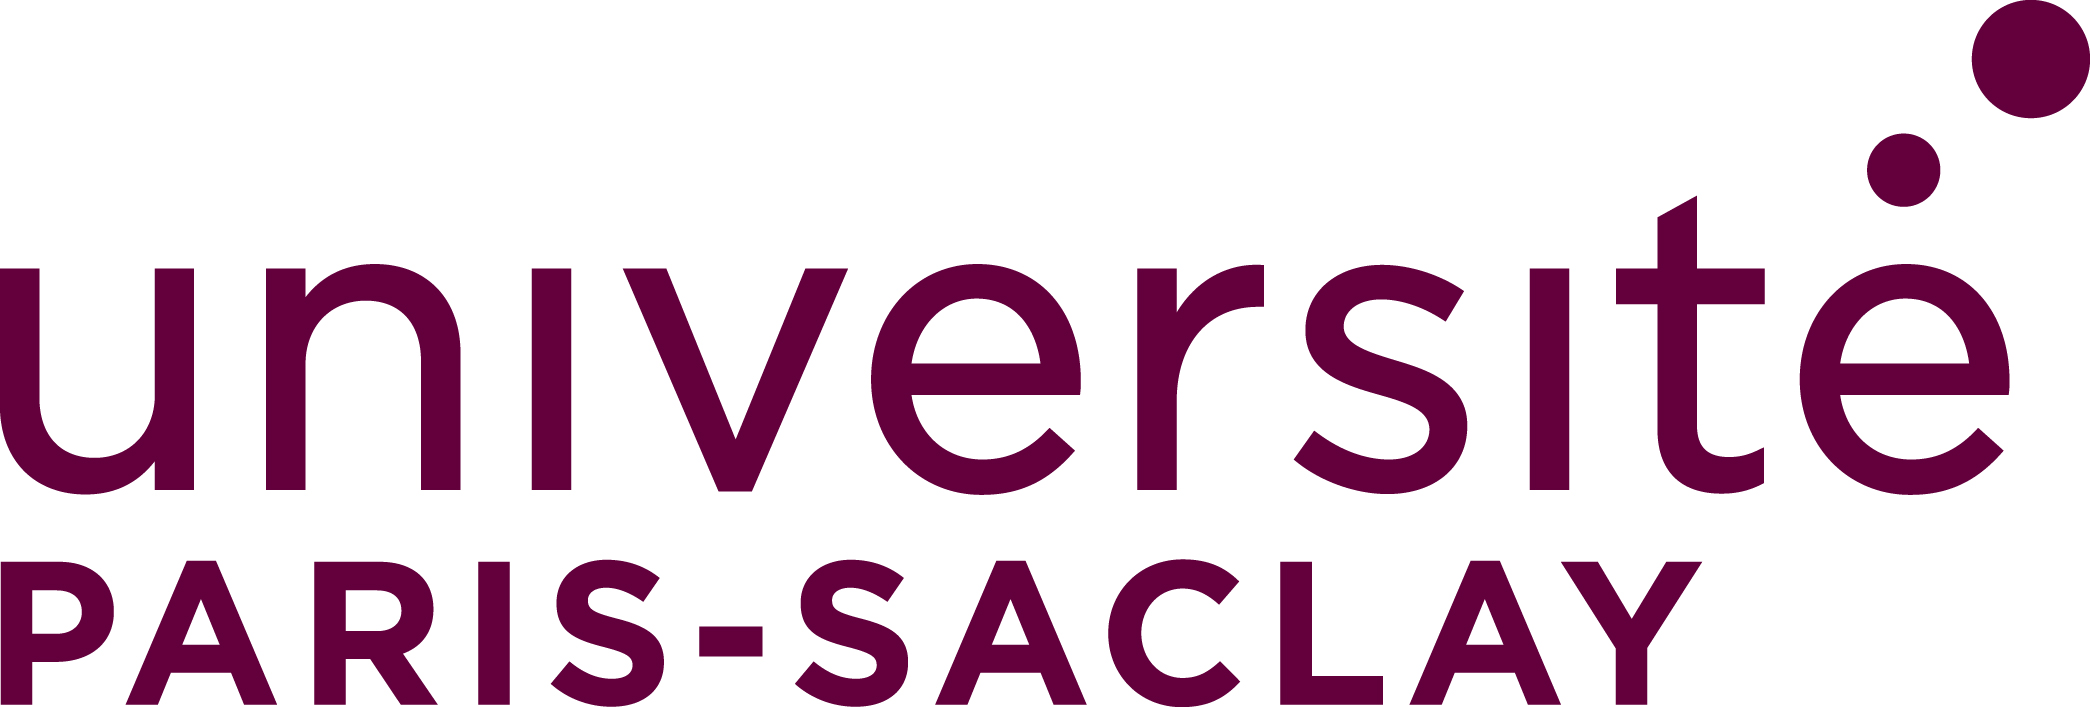 Paris-Saclay International Programs for Physical Sciences and their Interfaces